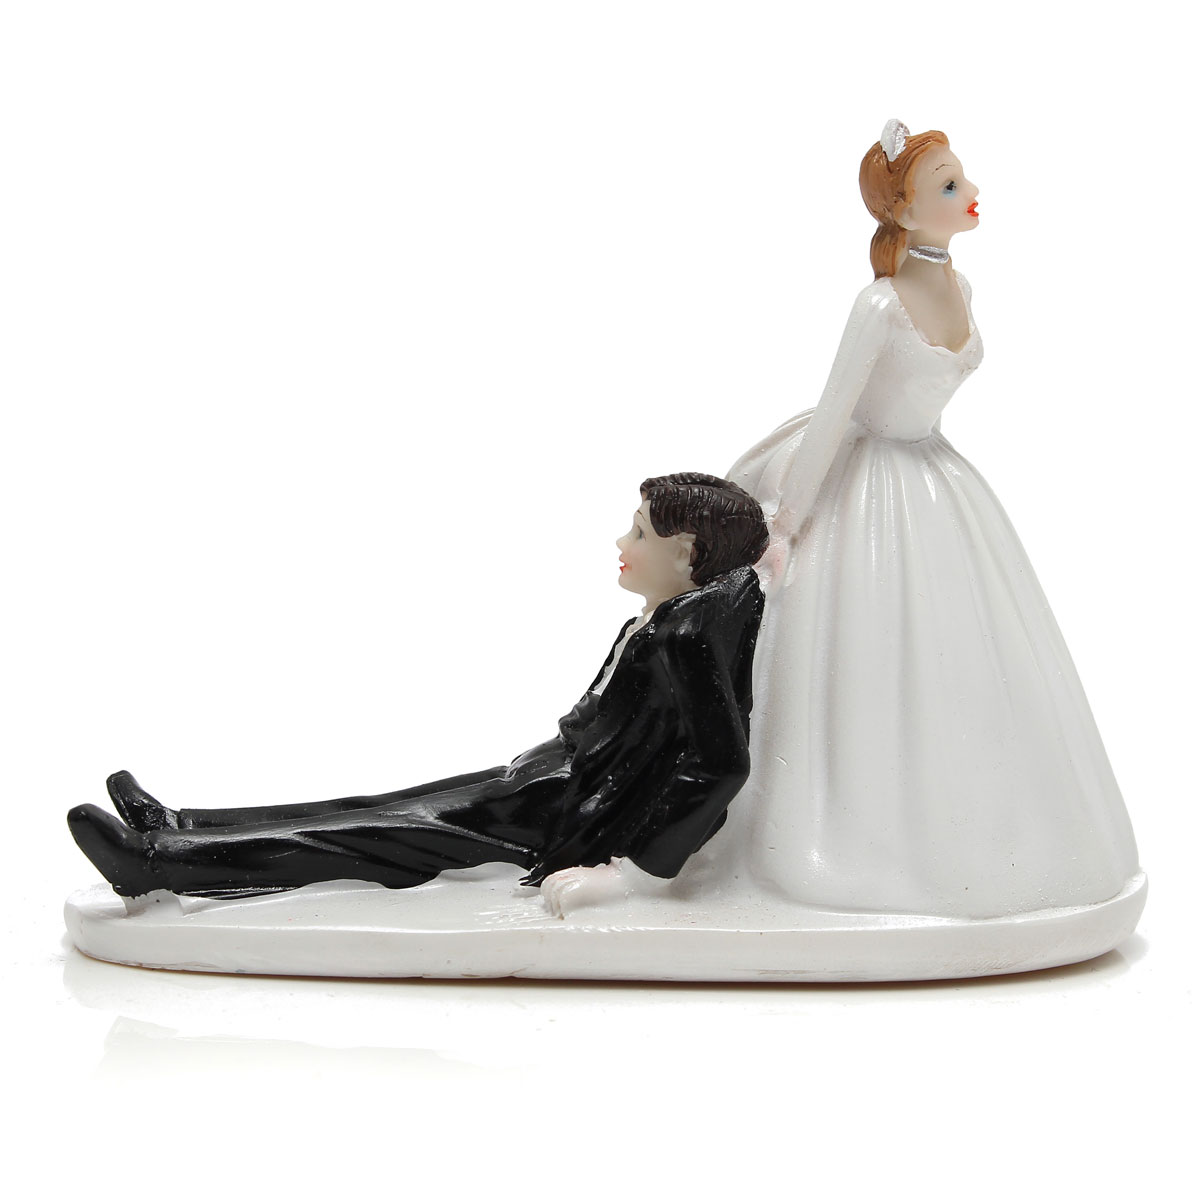 figurines wedding cake toppers and groom wedding figurine 14230